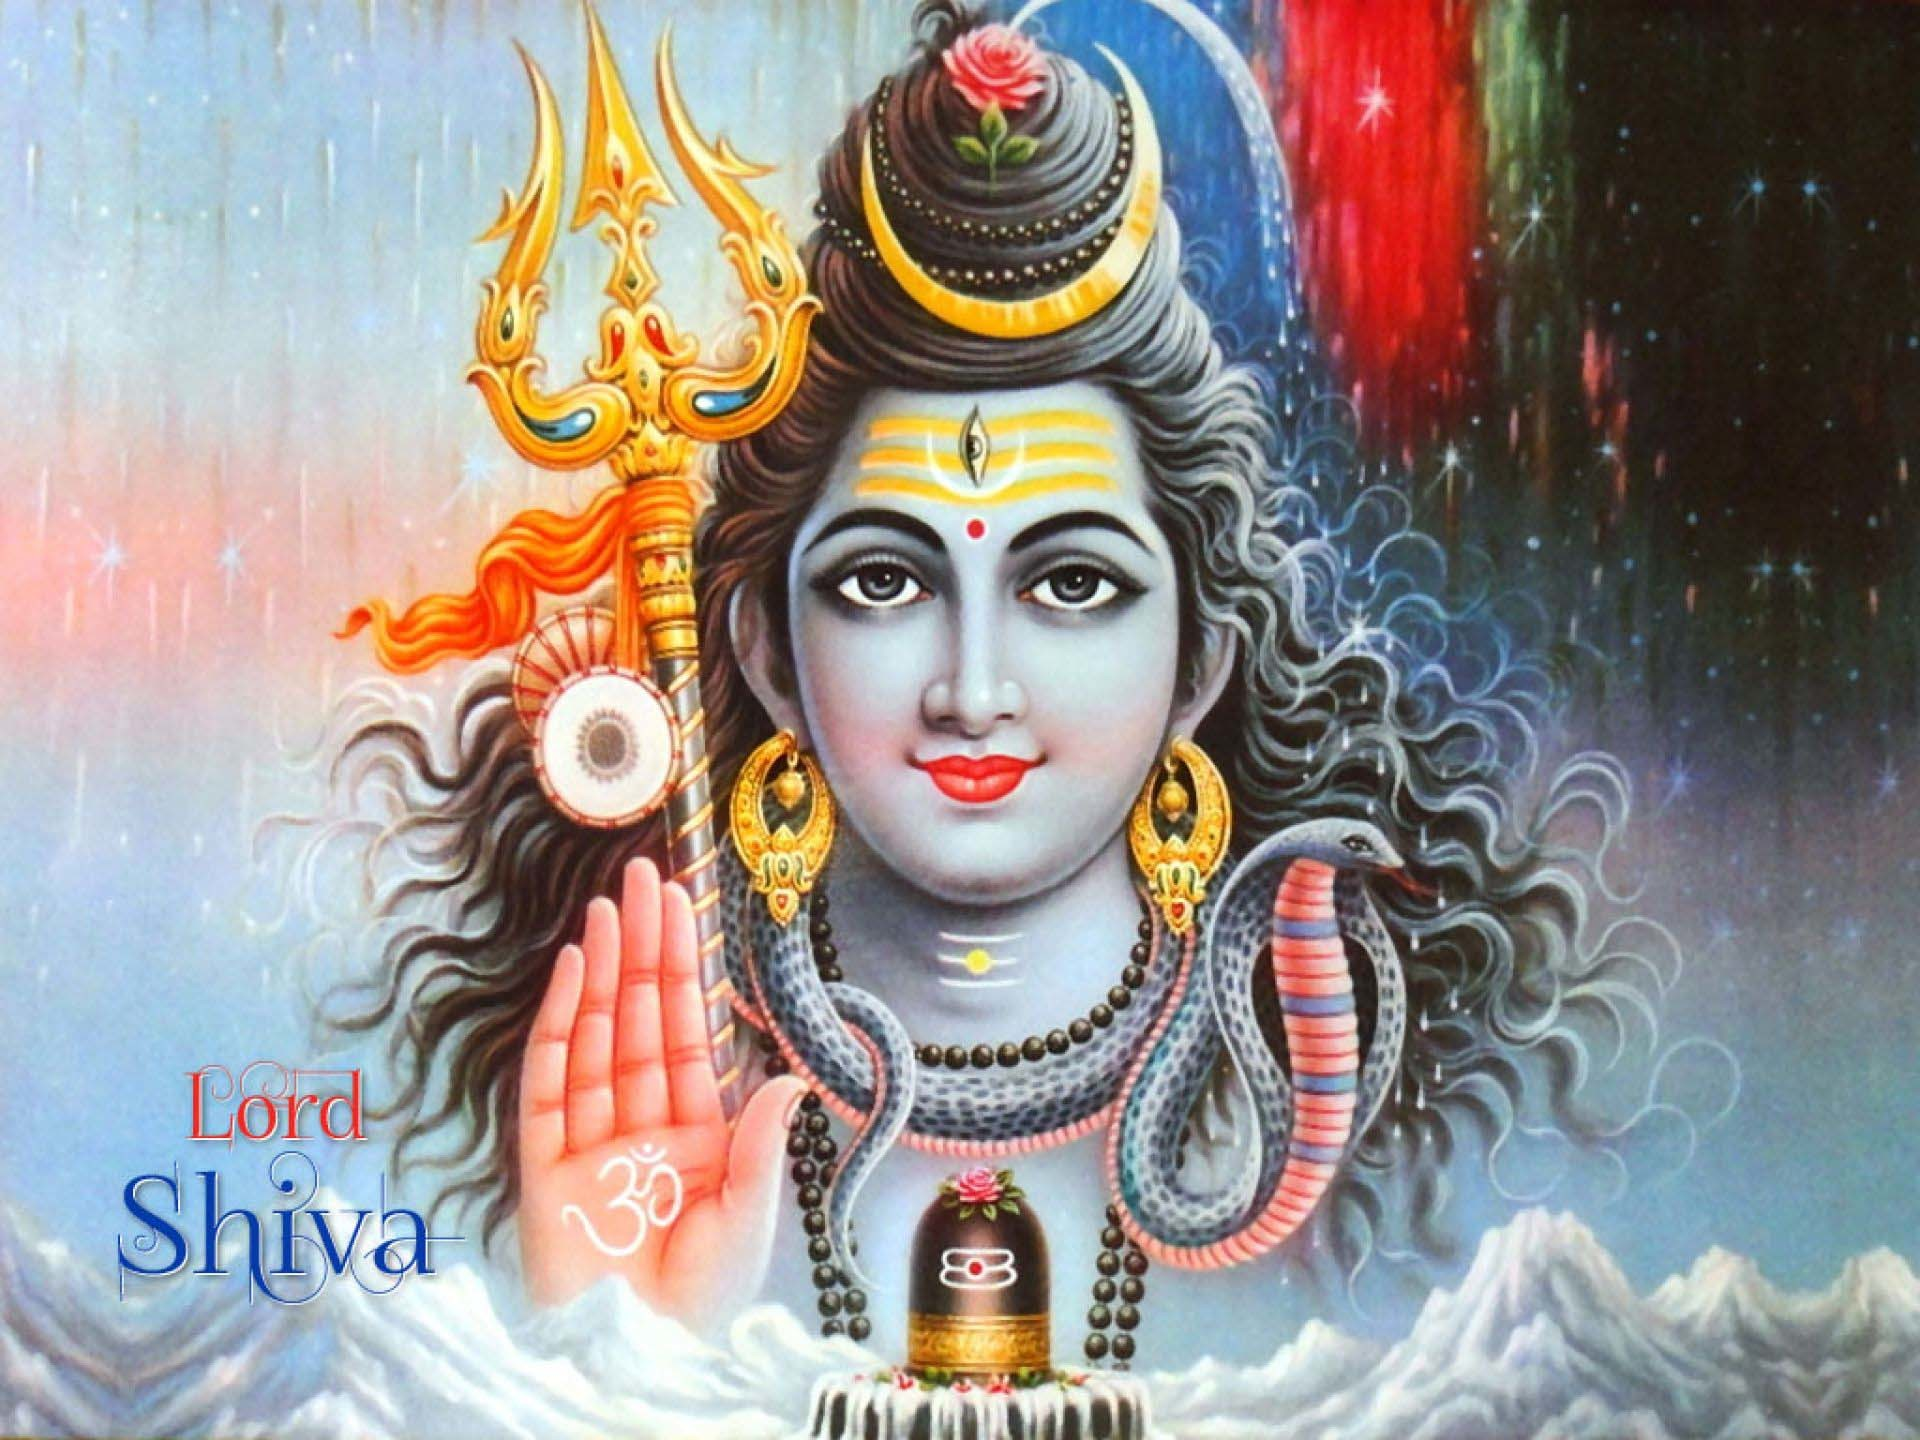 1920x1440 Lord Shiva Wallpapers HD Wallpapers for Desktop 2014